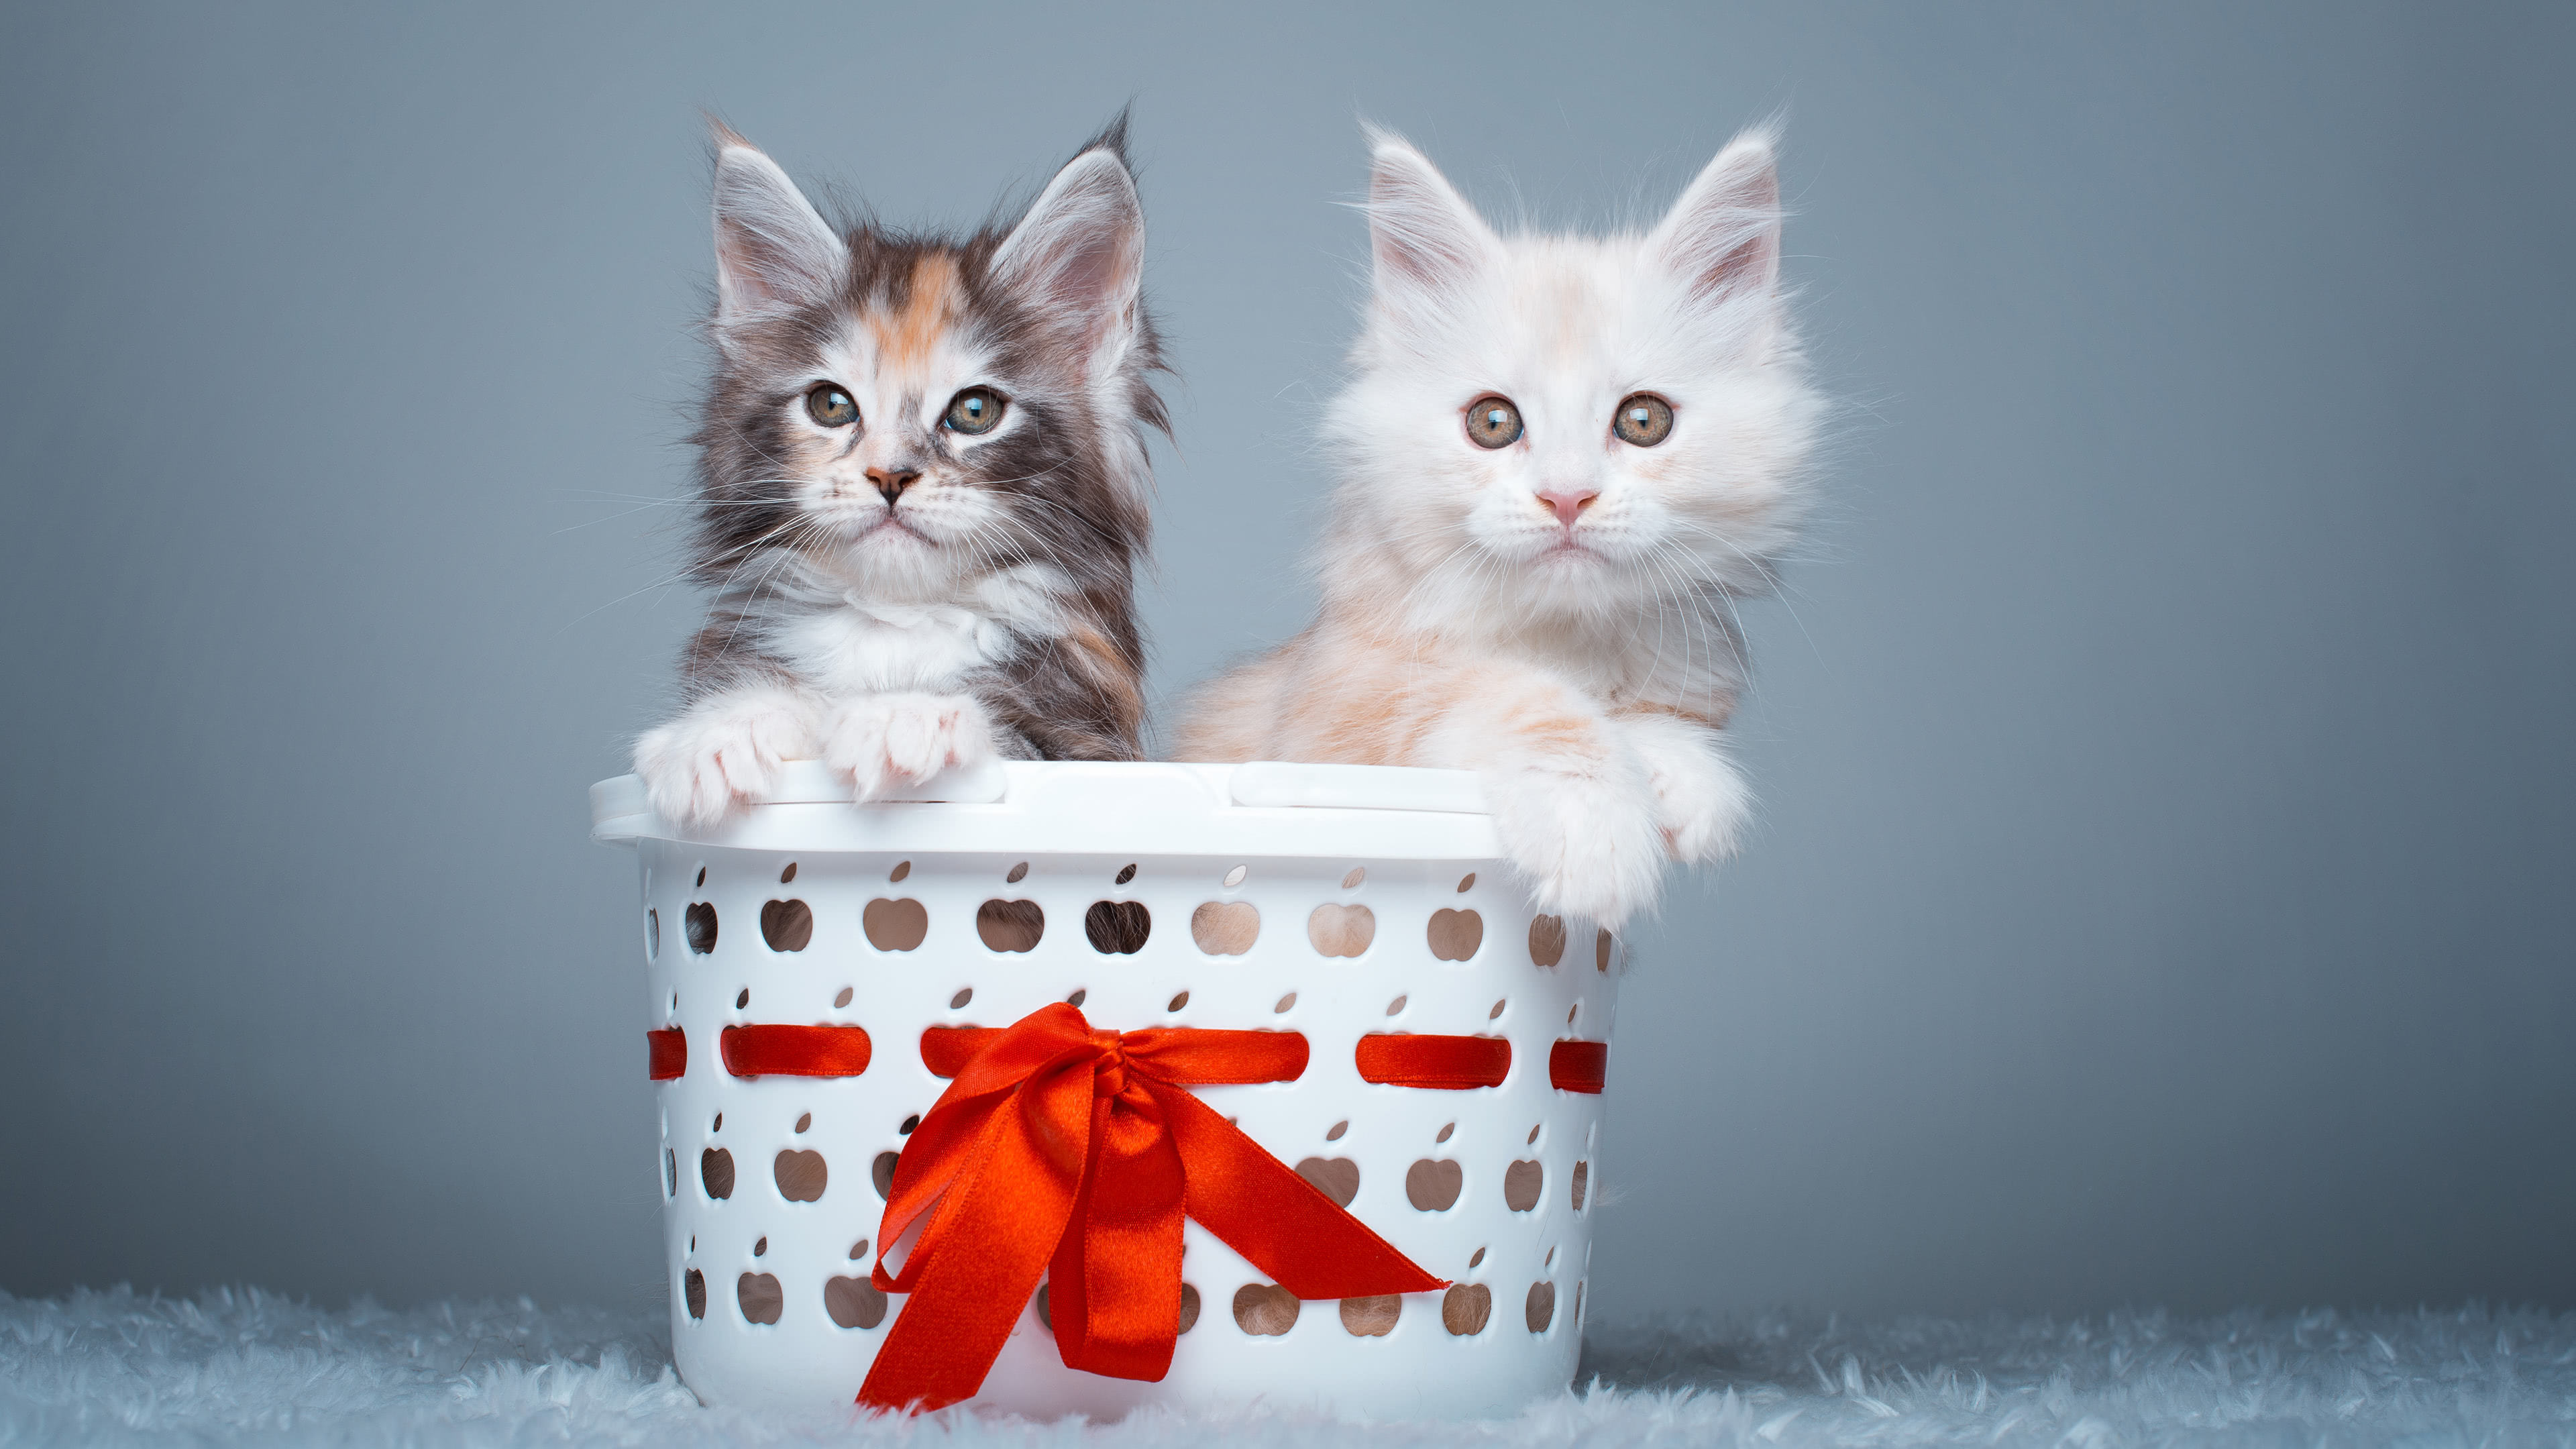 maine coon kittens uhd 4k wallpaper